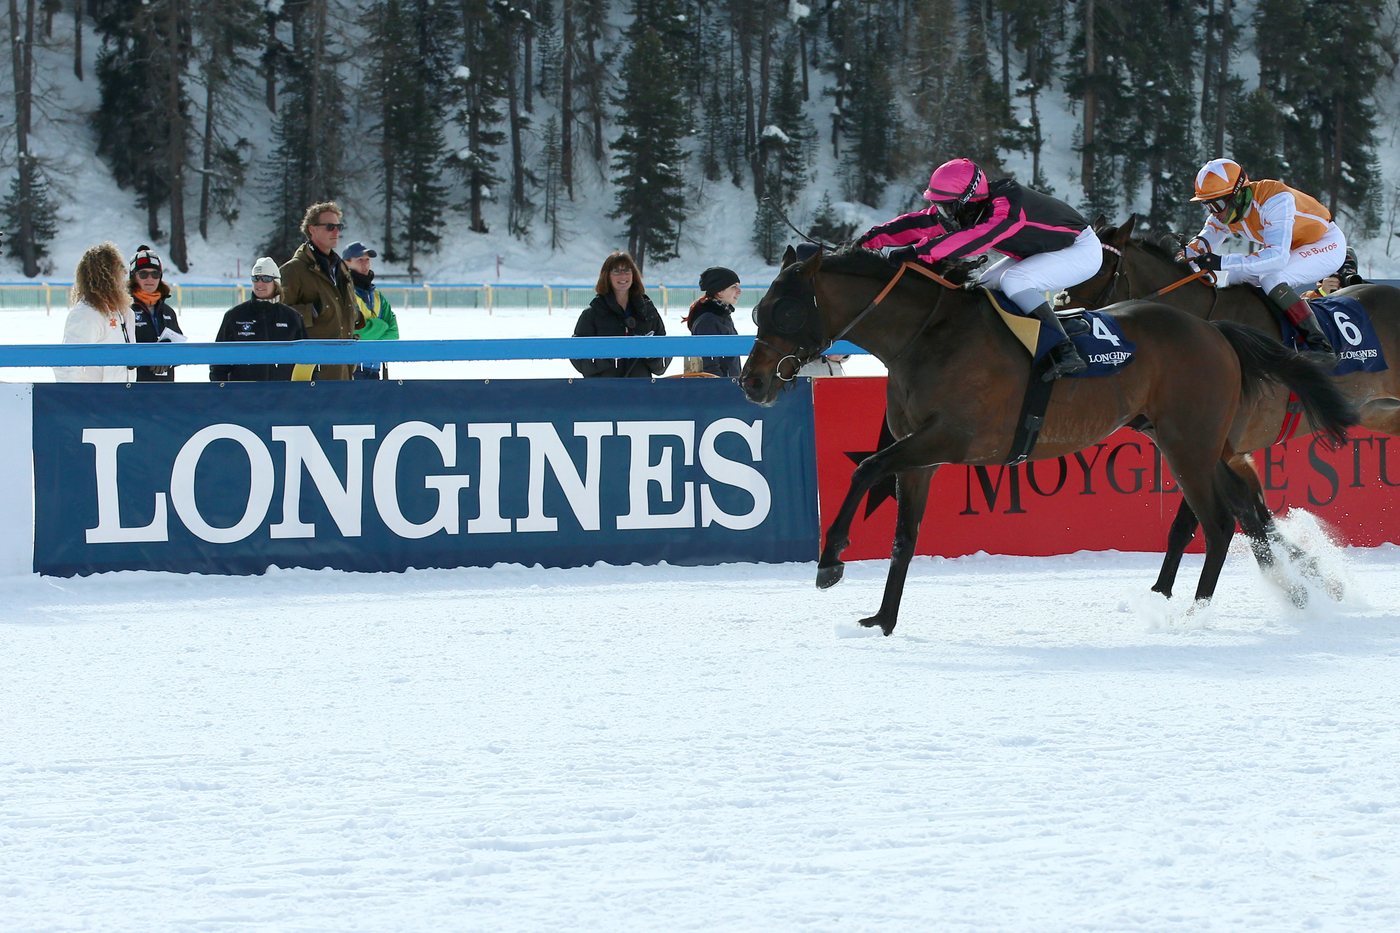 Longines Flat Racing Event: Maxim Pecheur and Nimrod won the Longines 79. Grosser Preis von St. Moritz 2